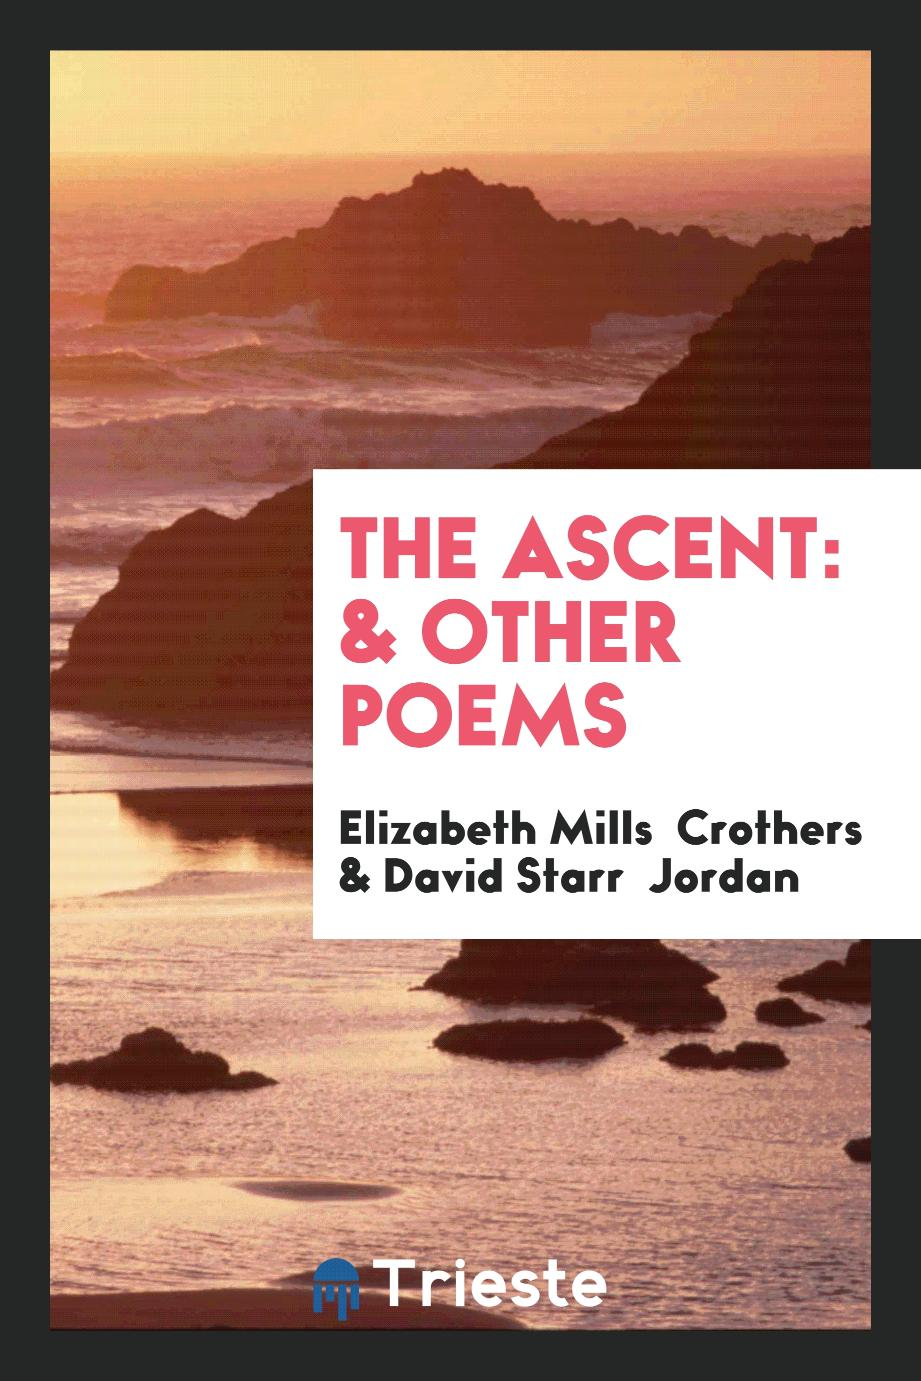 The ascent: & other poems